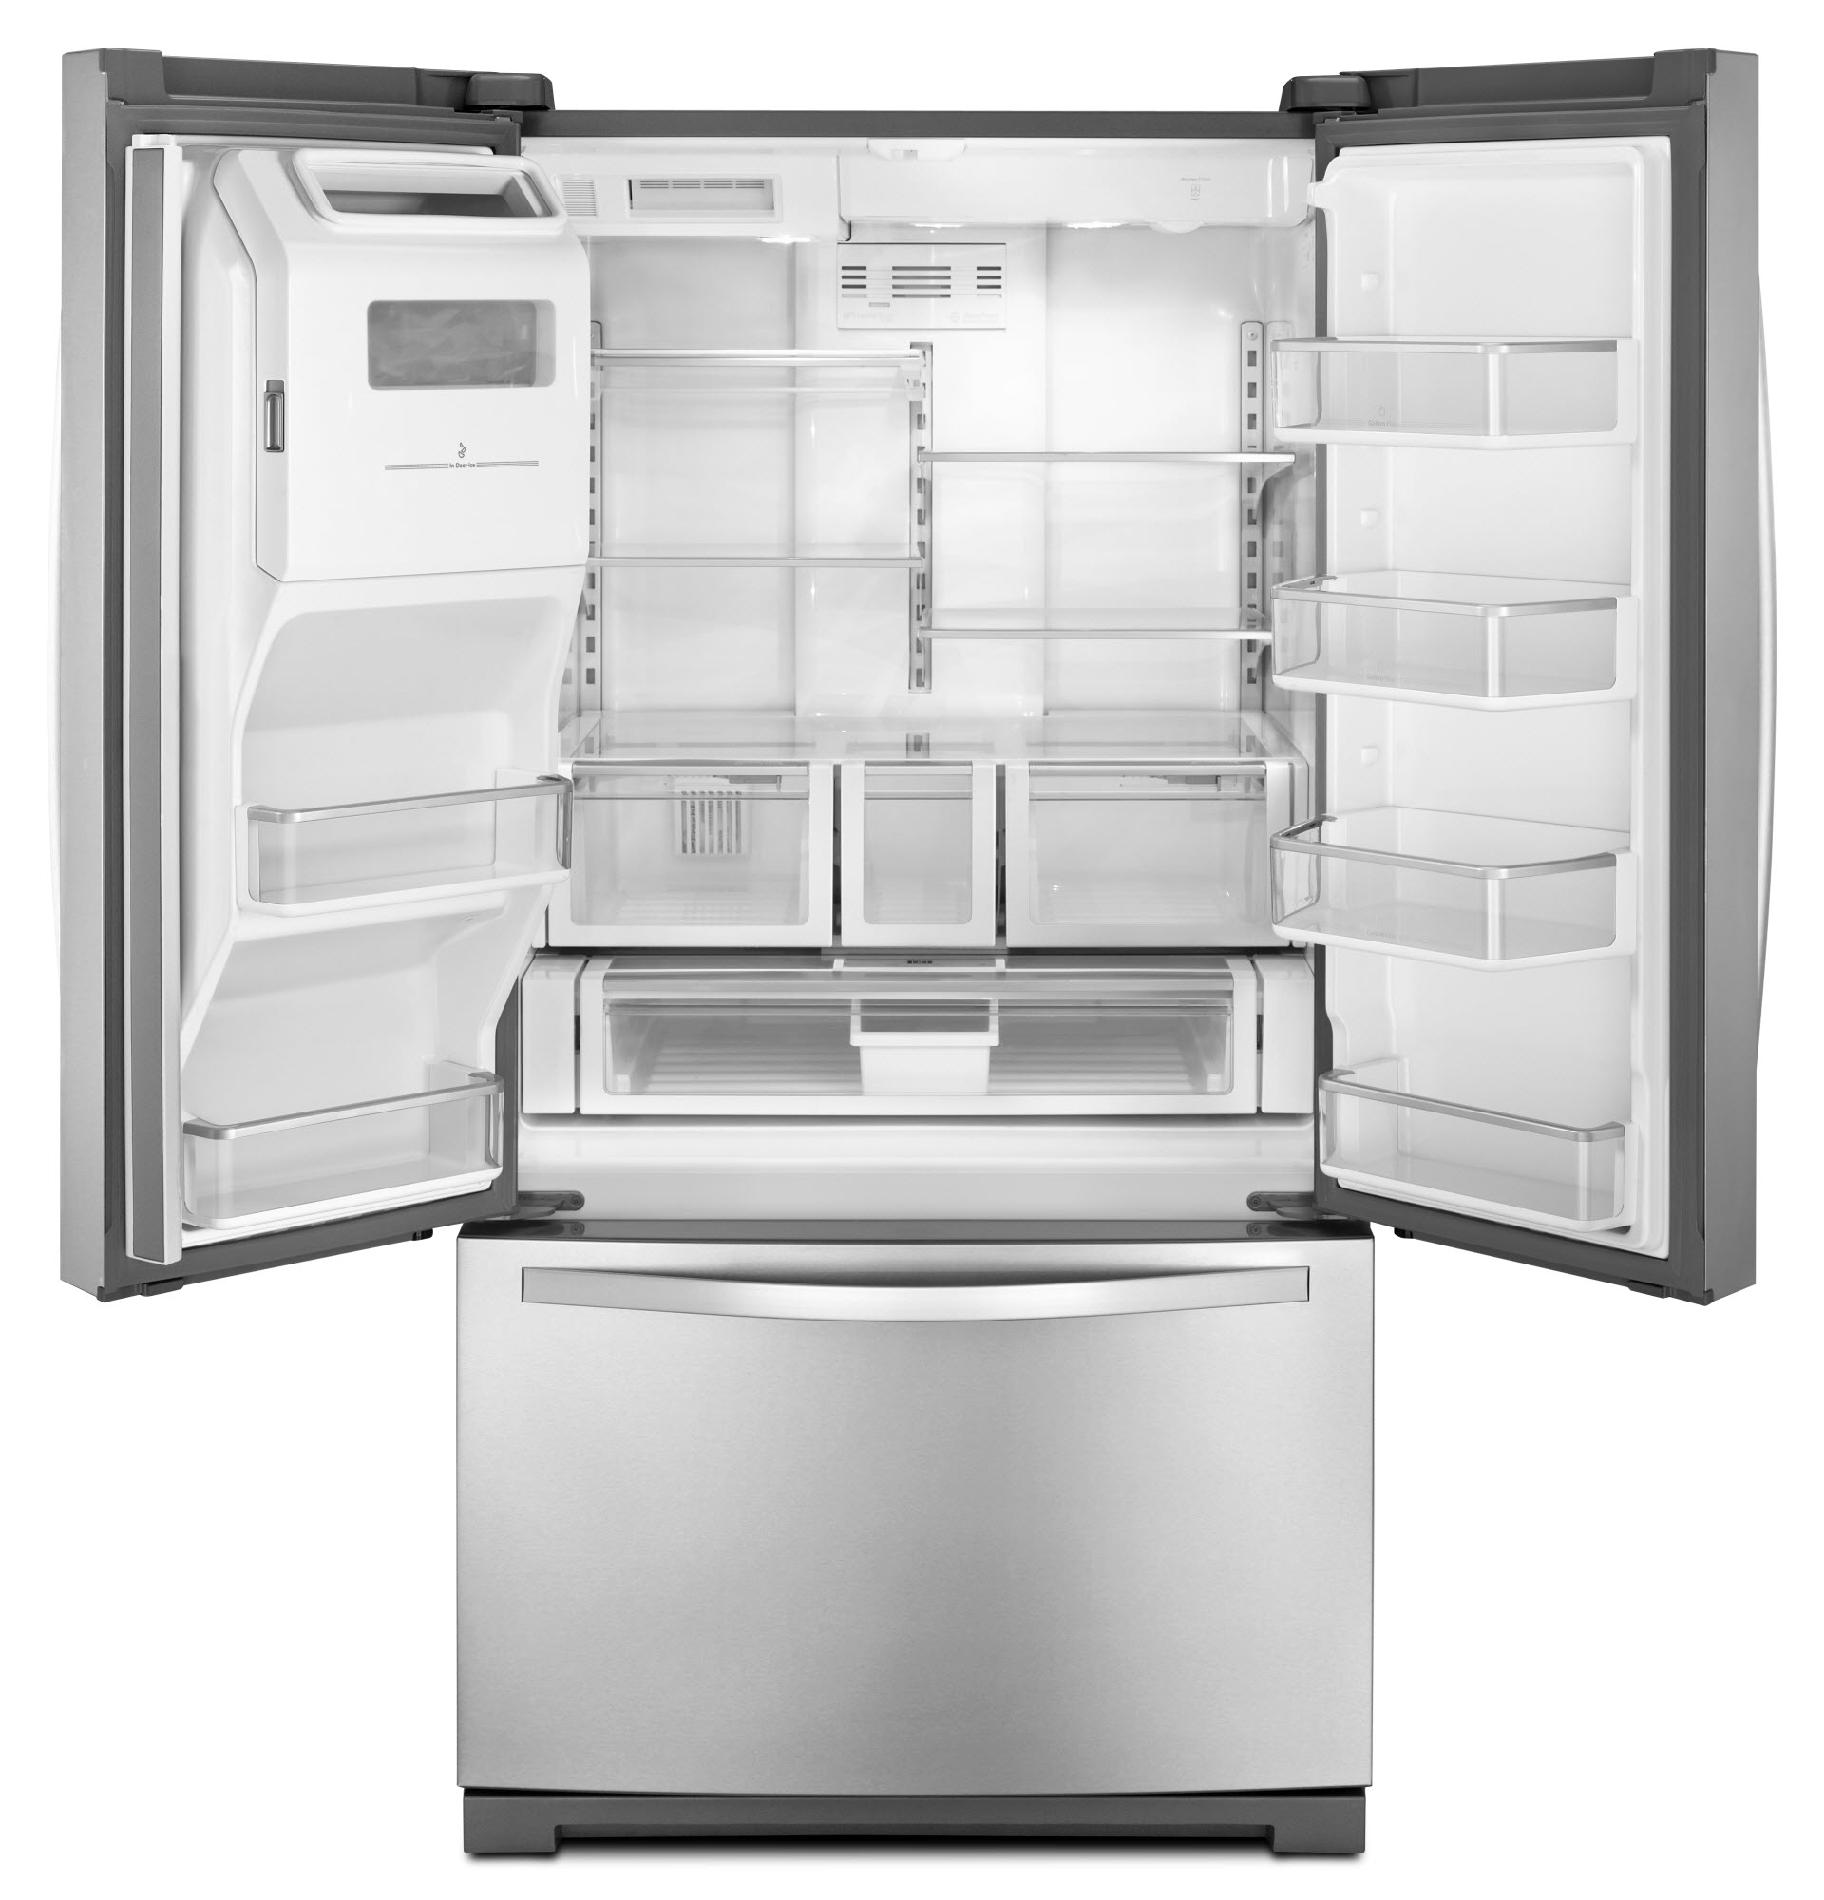 Whirlpool 28.6 cu. ft. French Door Refrigerator - Stainless Look